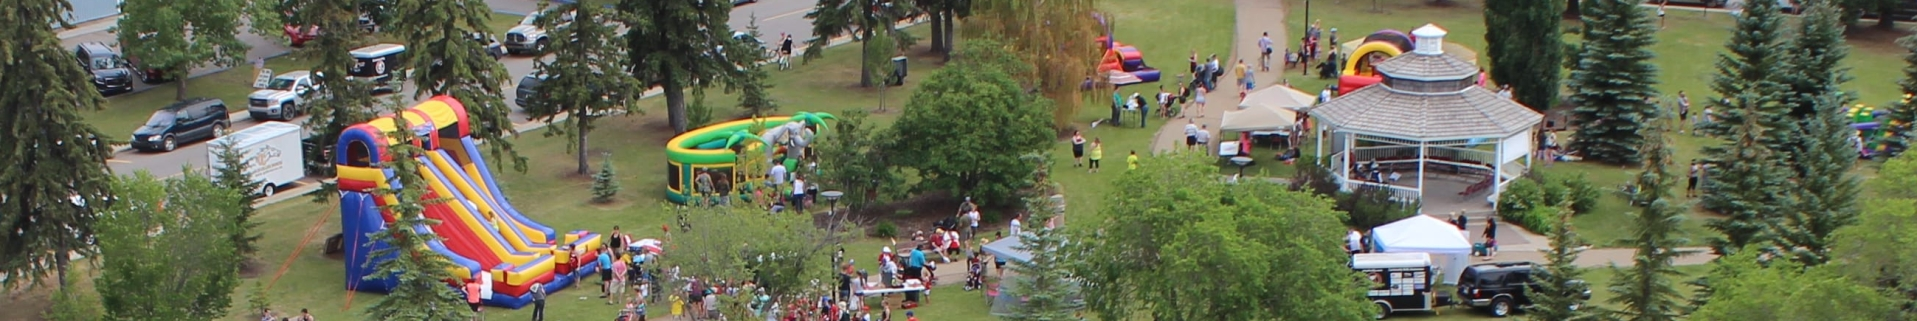 Aerial image of families enjoying Canada Day events in a green space